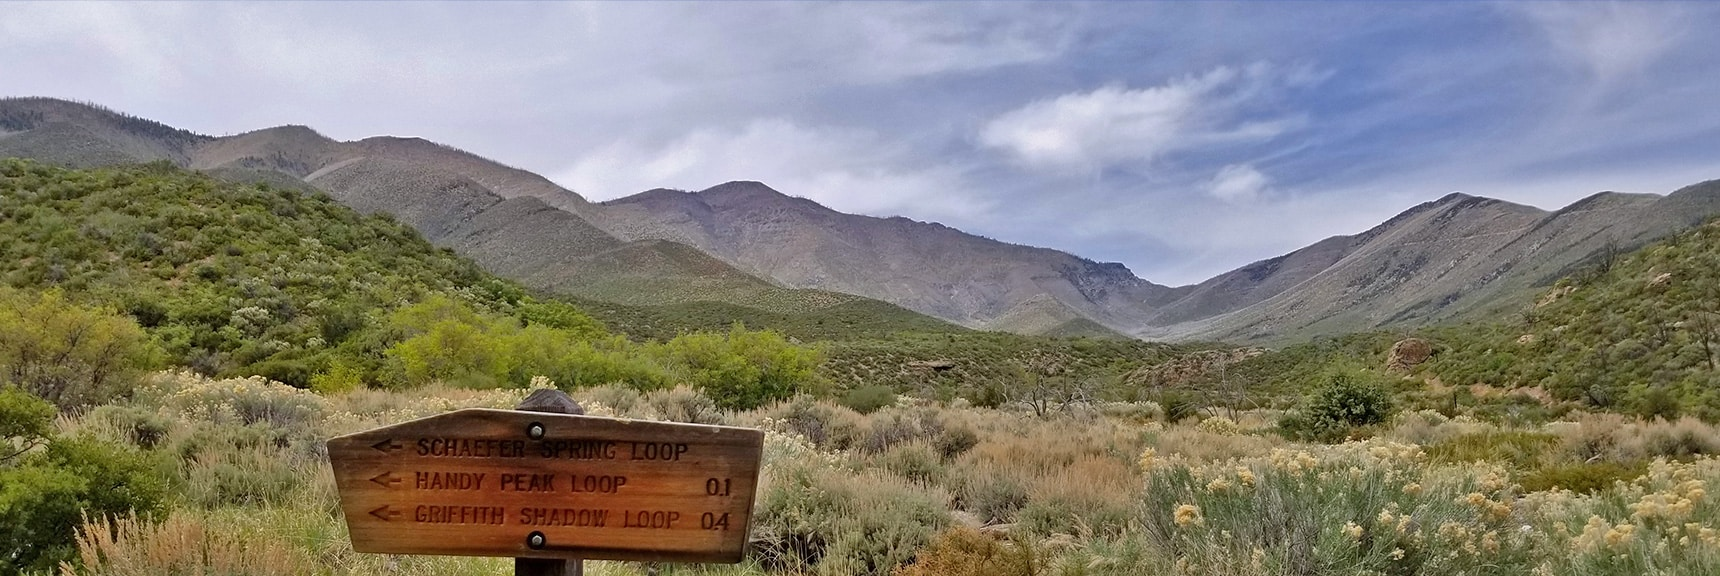 Griffith Peak from Lovell Canyon | La Madre Mountains Wilderness, Nevada